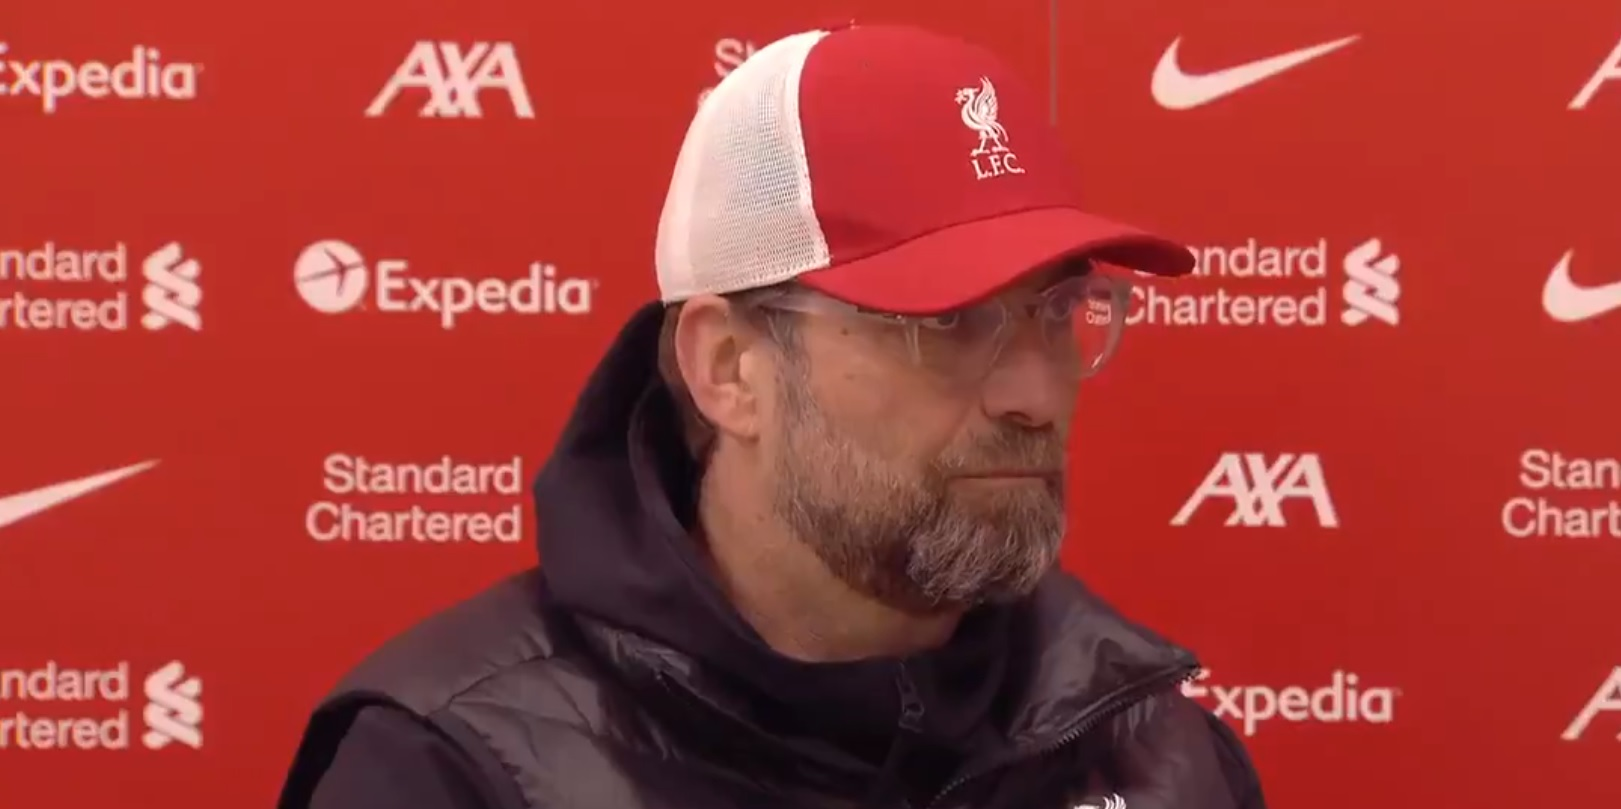 (Video) Klopp questions Kavanagh penalty decision: 'He saw something all other people didn't see'